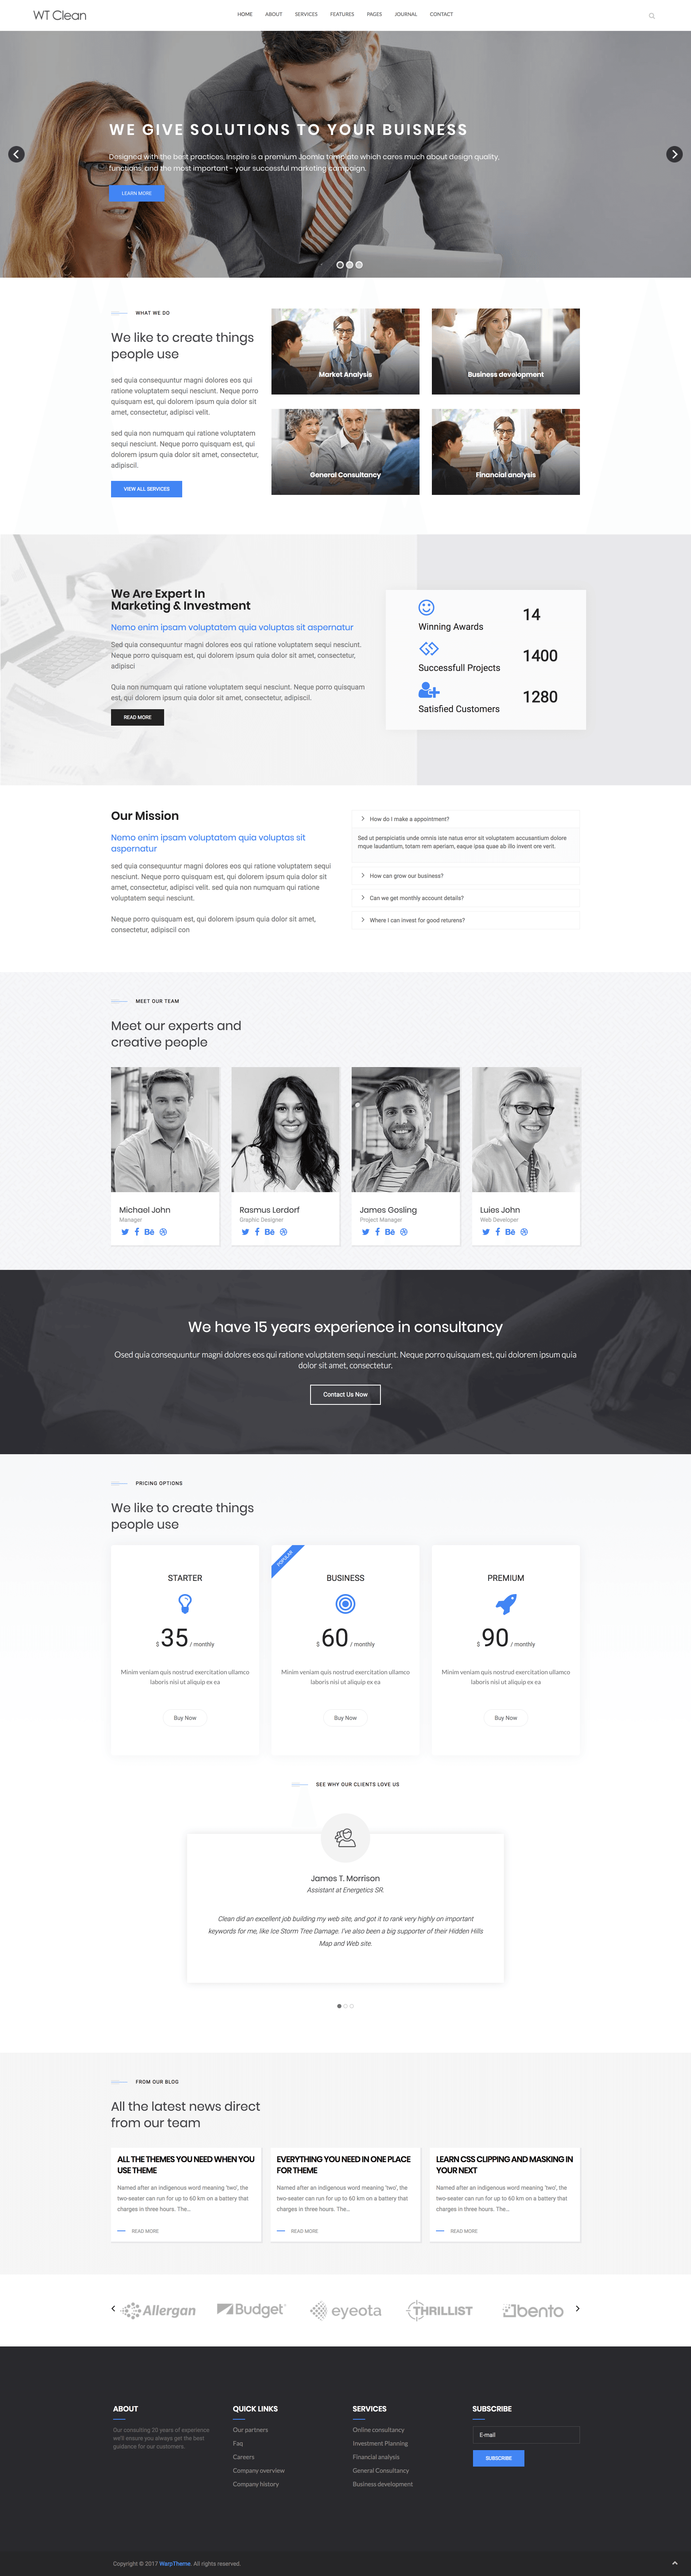 Wt clean documentation warptheme its simple and clean html5 css3 template its a full responsive template built uikit warp framework the template is designed so it is easy to use and maxwellsz